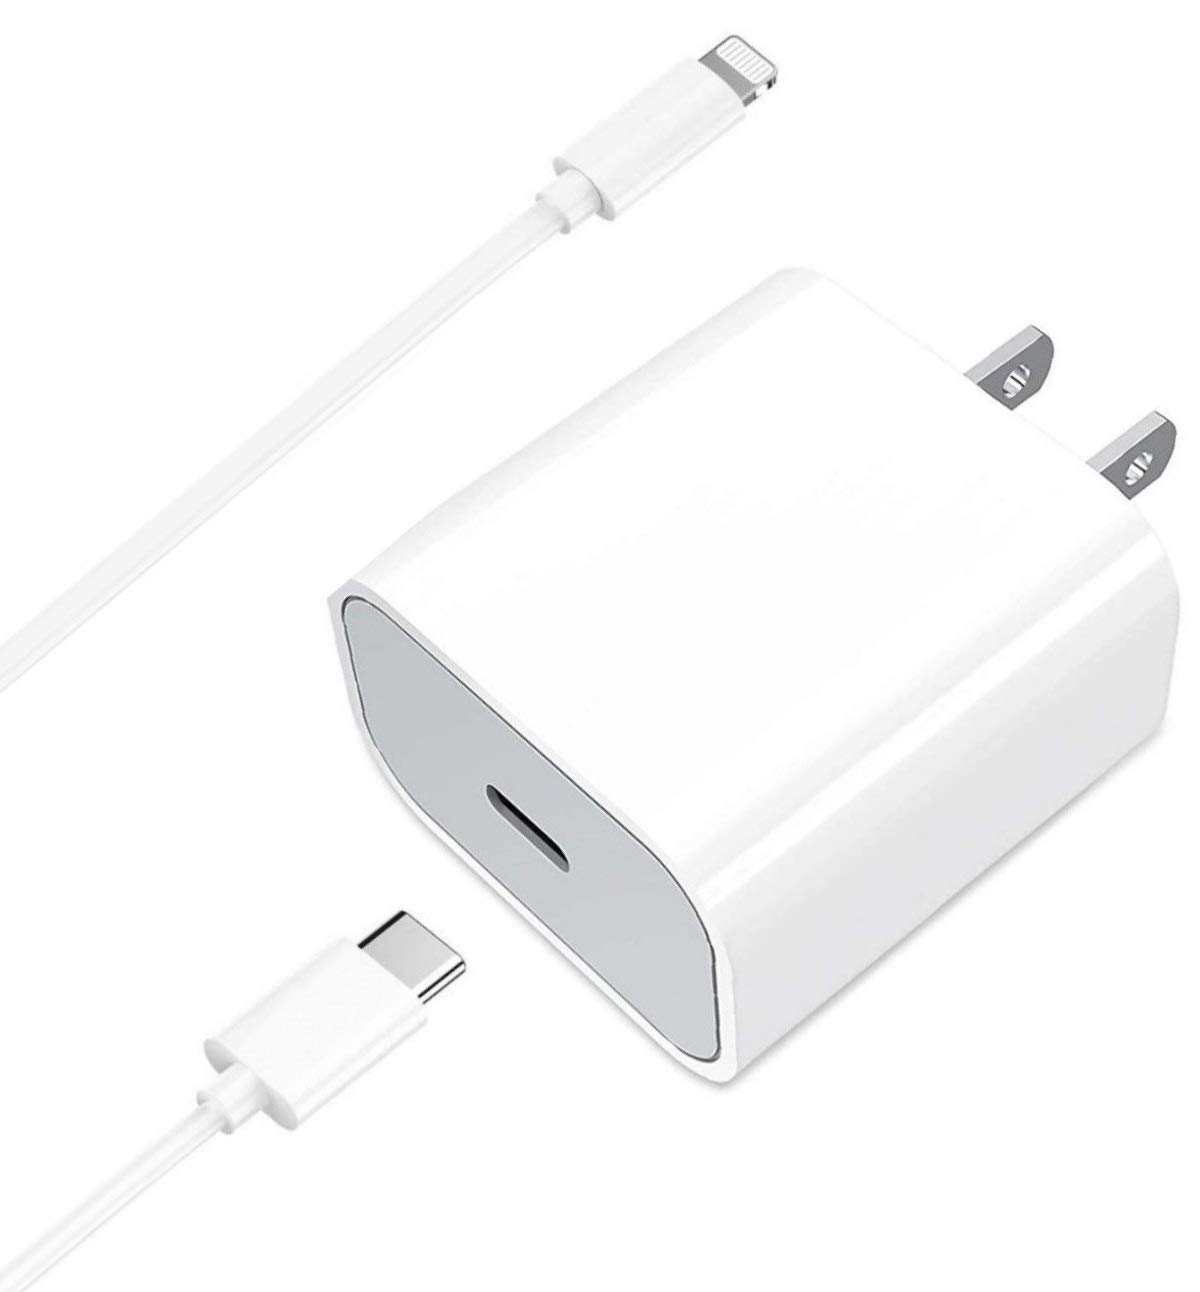 iPhone USB C Charger, Apple MFI Certified USB-C to Lightning Cable, 20W USB-C Power Adapter with 6.6FT Fast Charging Cord for iPhone 12 Mini 12 Pro Max 11 Pro Max SE 2020 XR X XS 8 Plus, iPad Pro